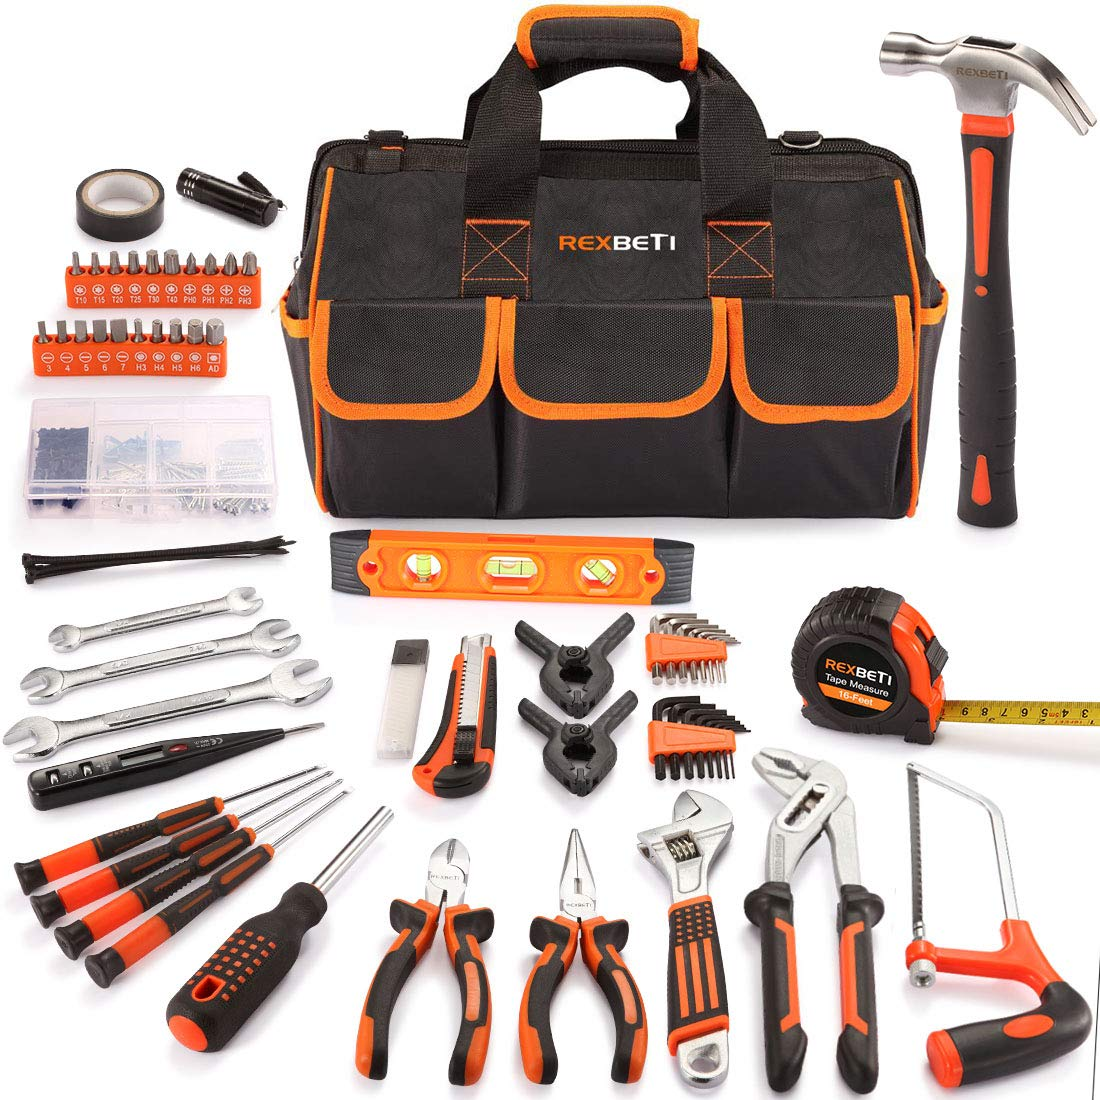 REXBETI 169-Piece Premium Tool Kit with 16 inch Tool Bag, Steel Home Repairing Tool Set, Large Mouth Opening Tool Bag with 19 Pockets by REXBETI